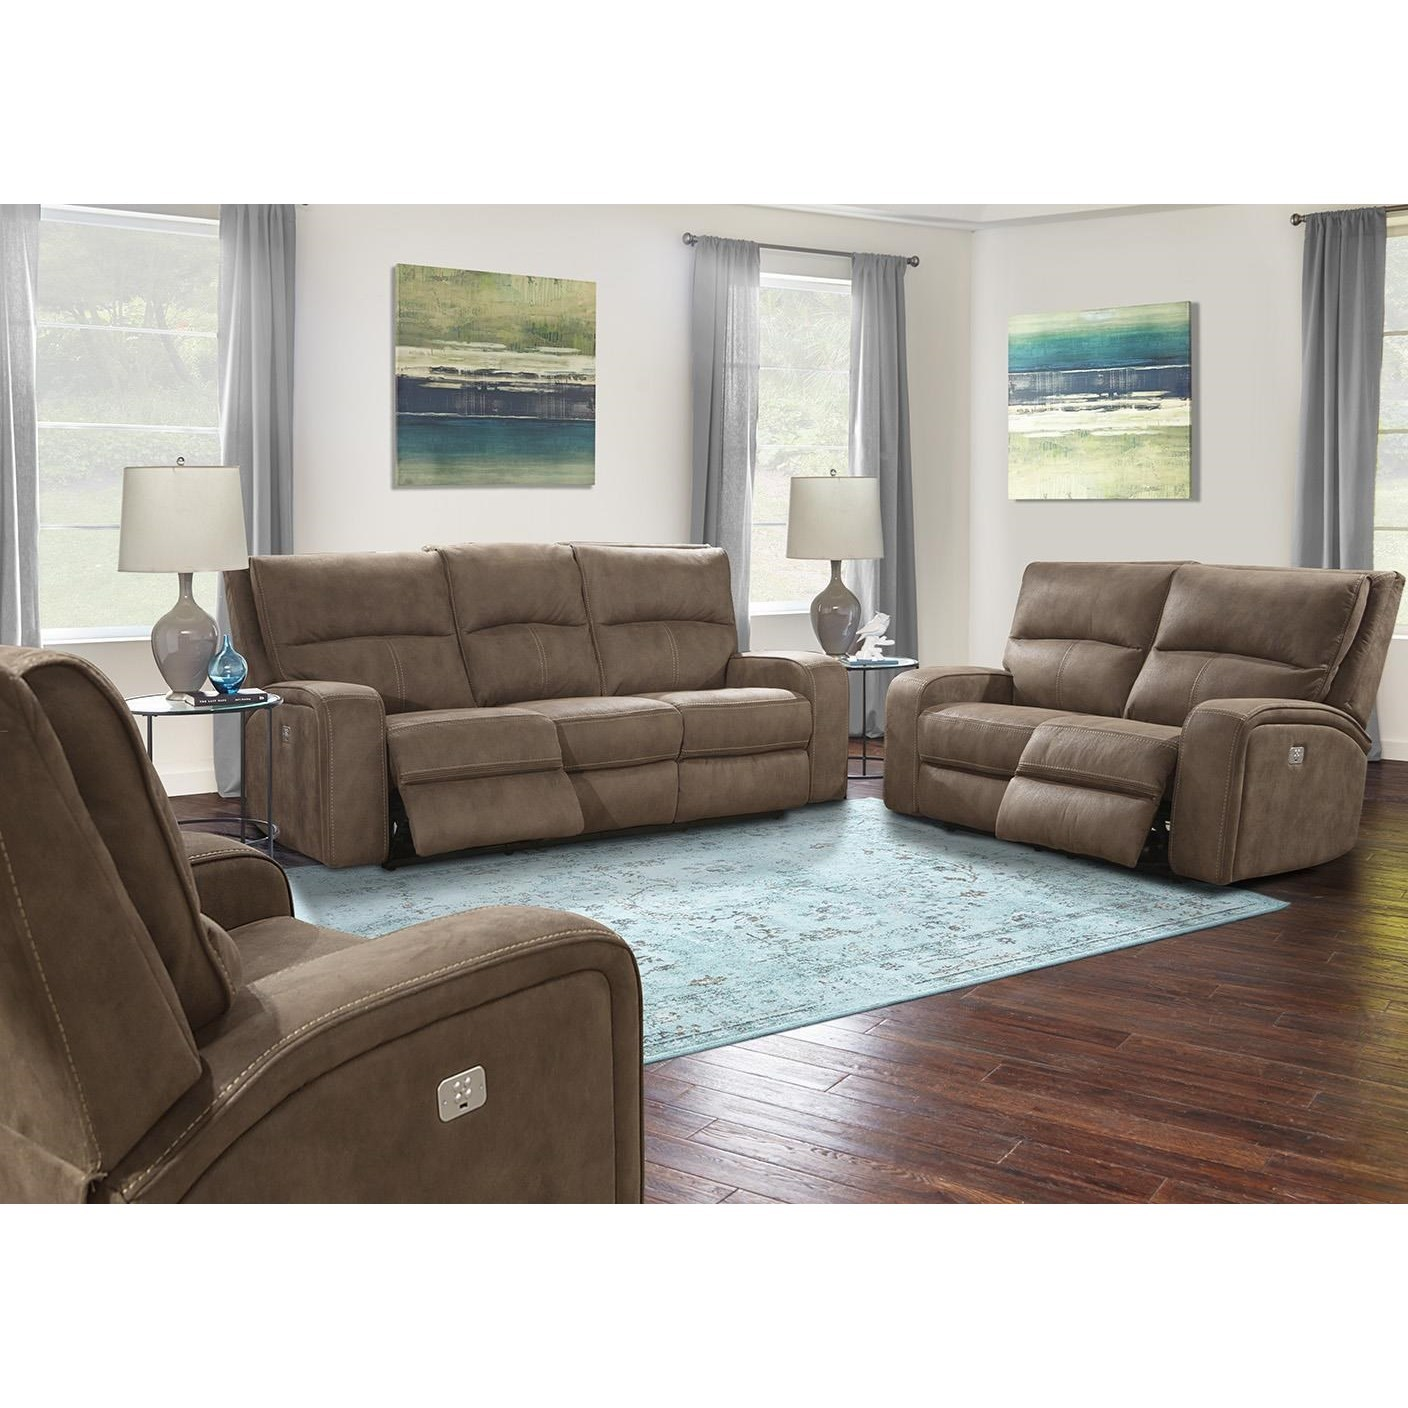 Polaris Power Reclining Living Room Group by Parker Living at Wilcox Furniture